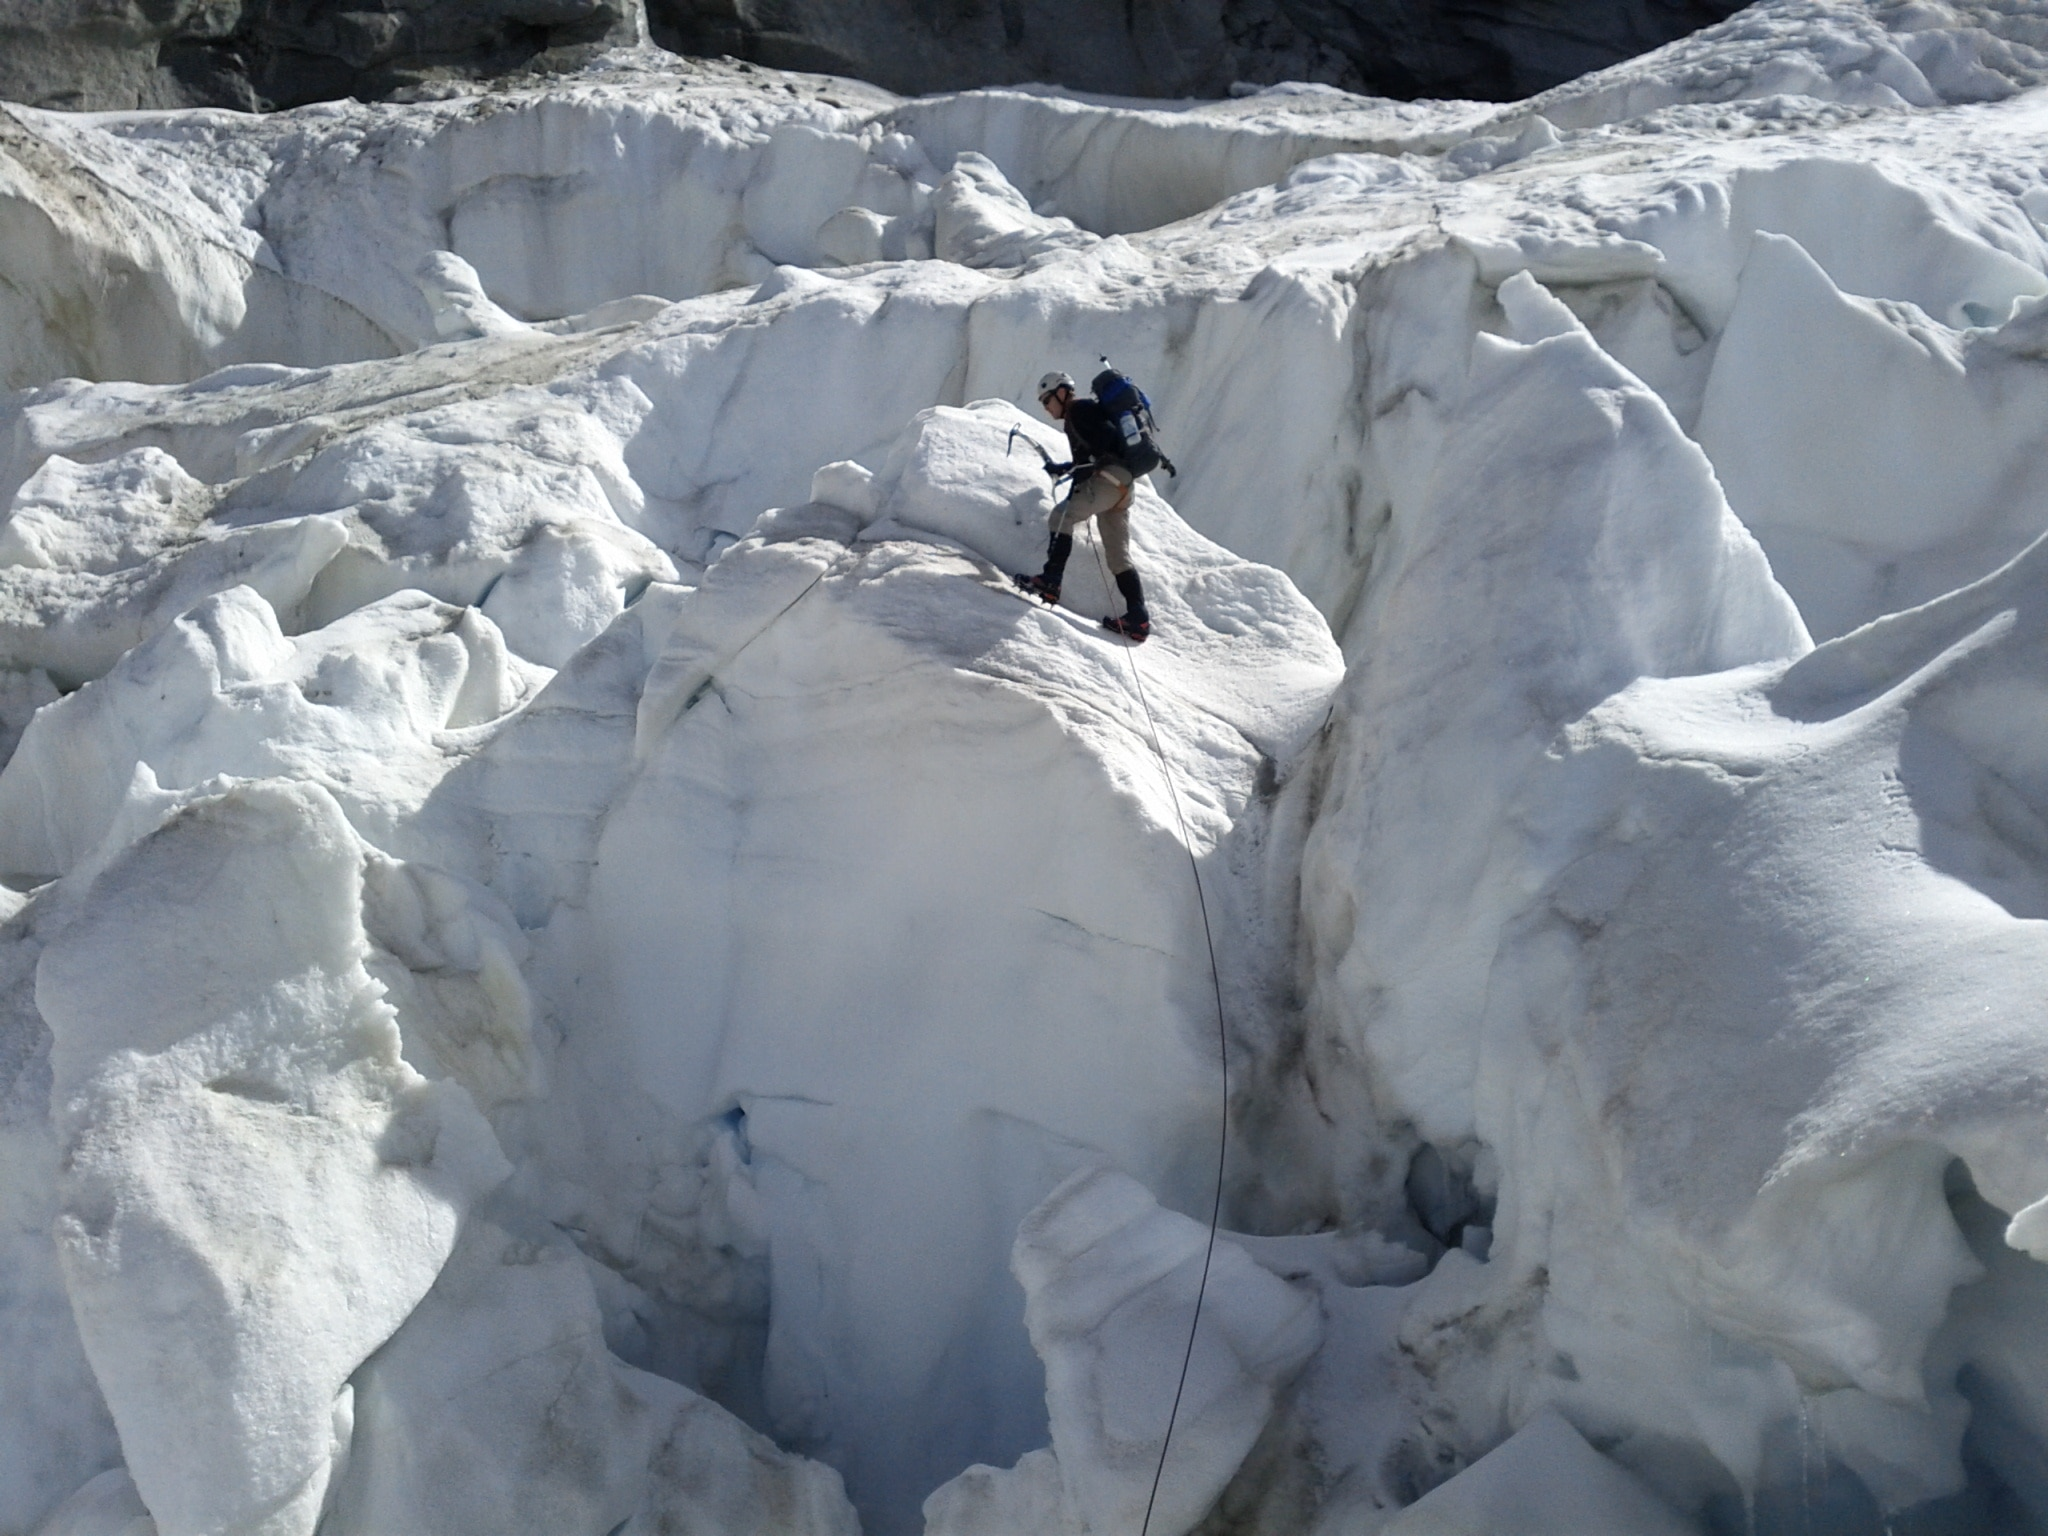 The lower glacier on Monte Rosa was a maze of crevasses